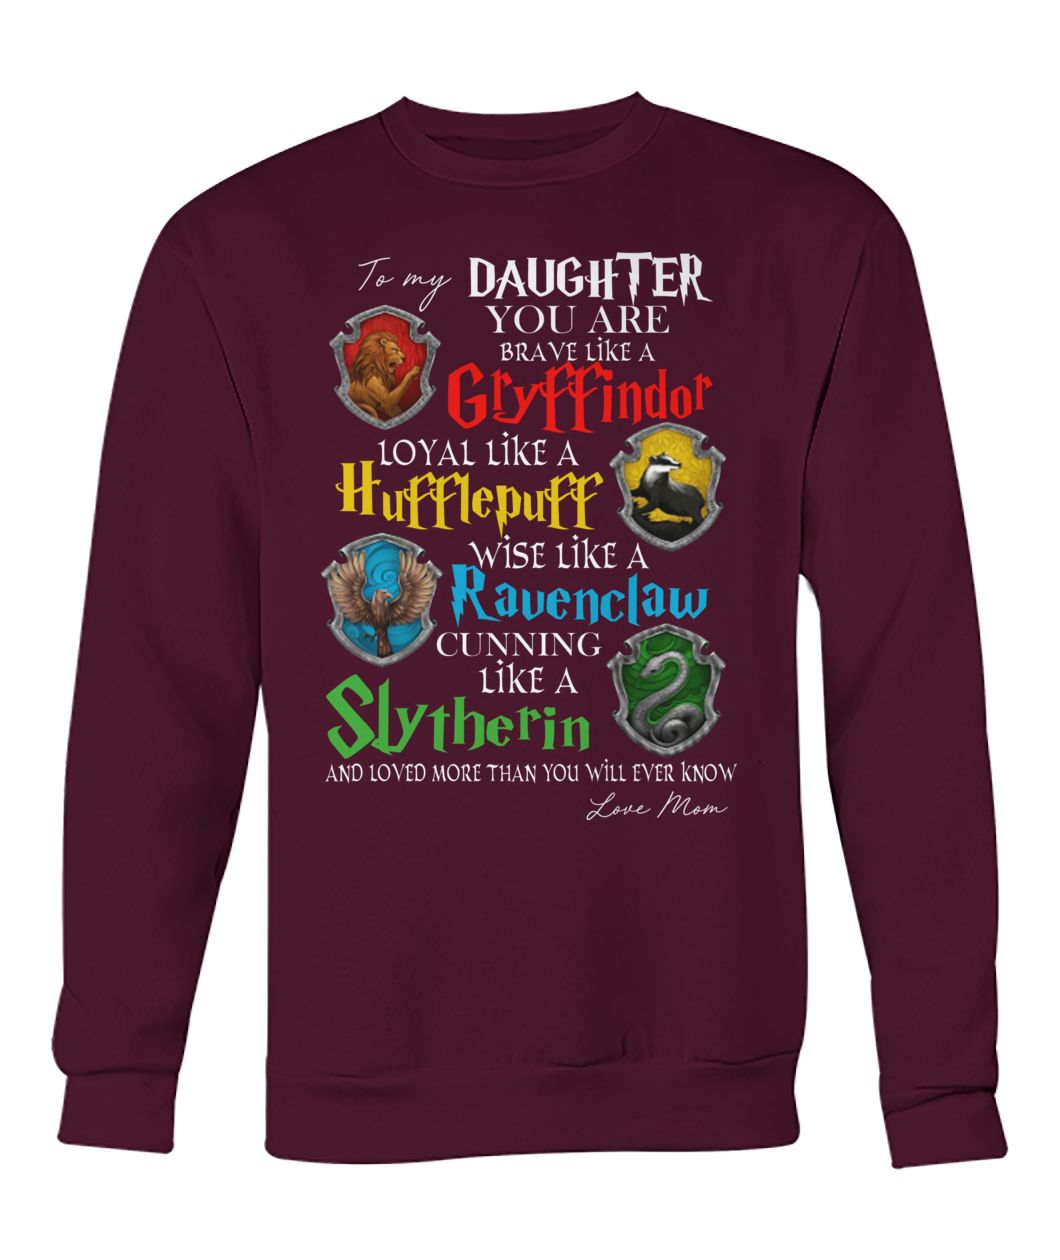 To my daughter you are braver like a Gryffindor crew neck sweatshirt